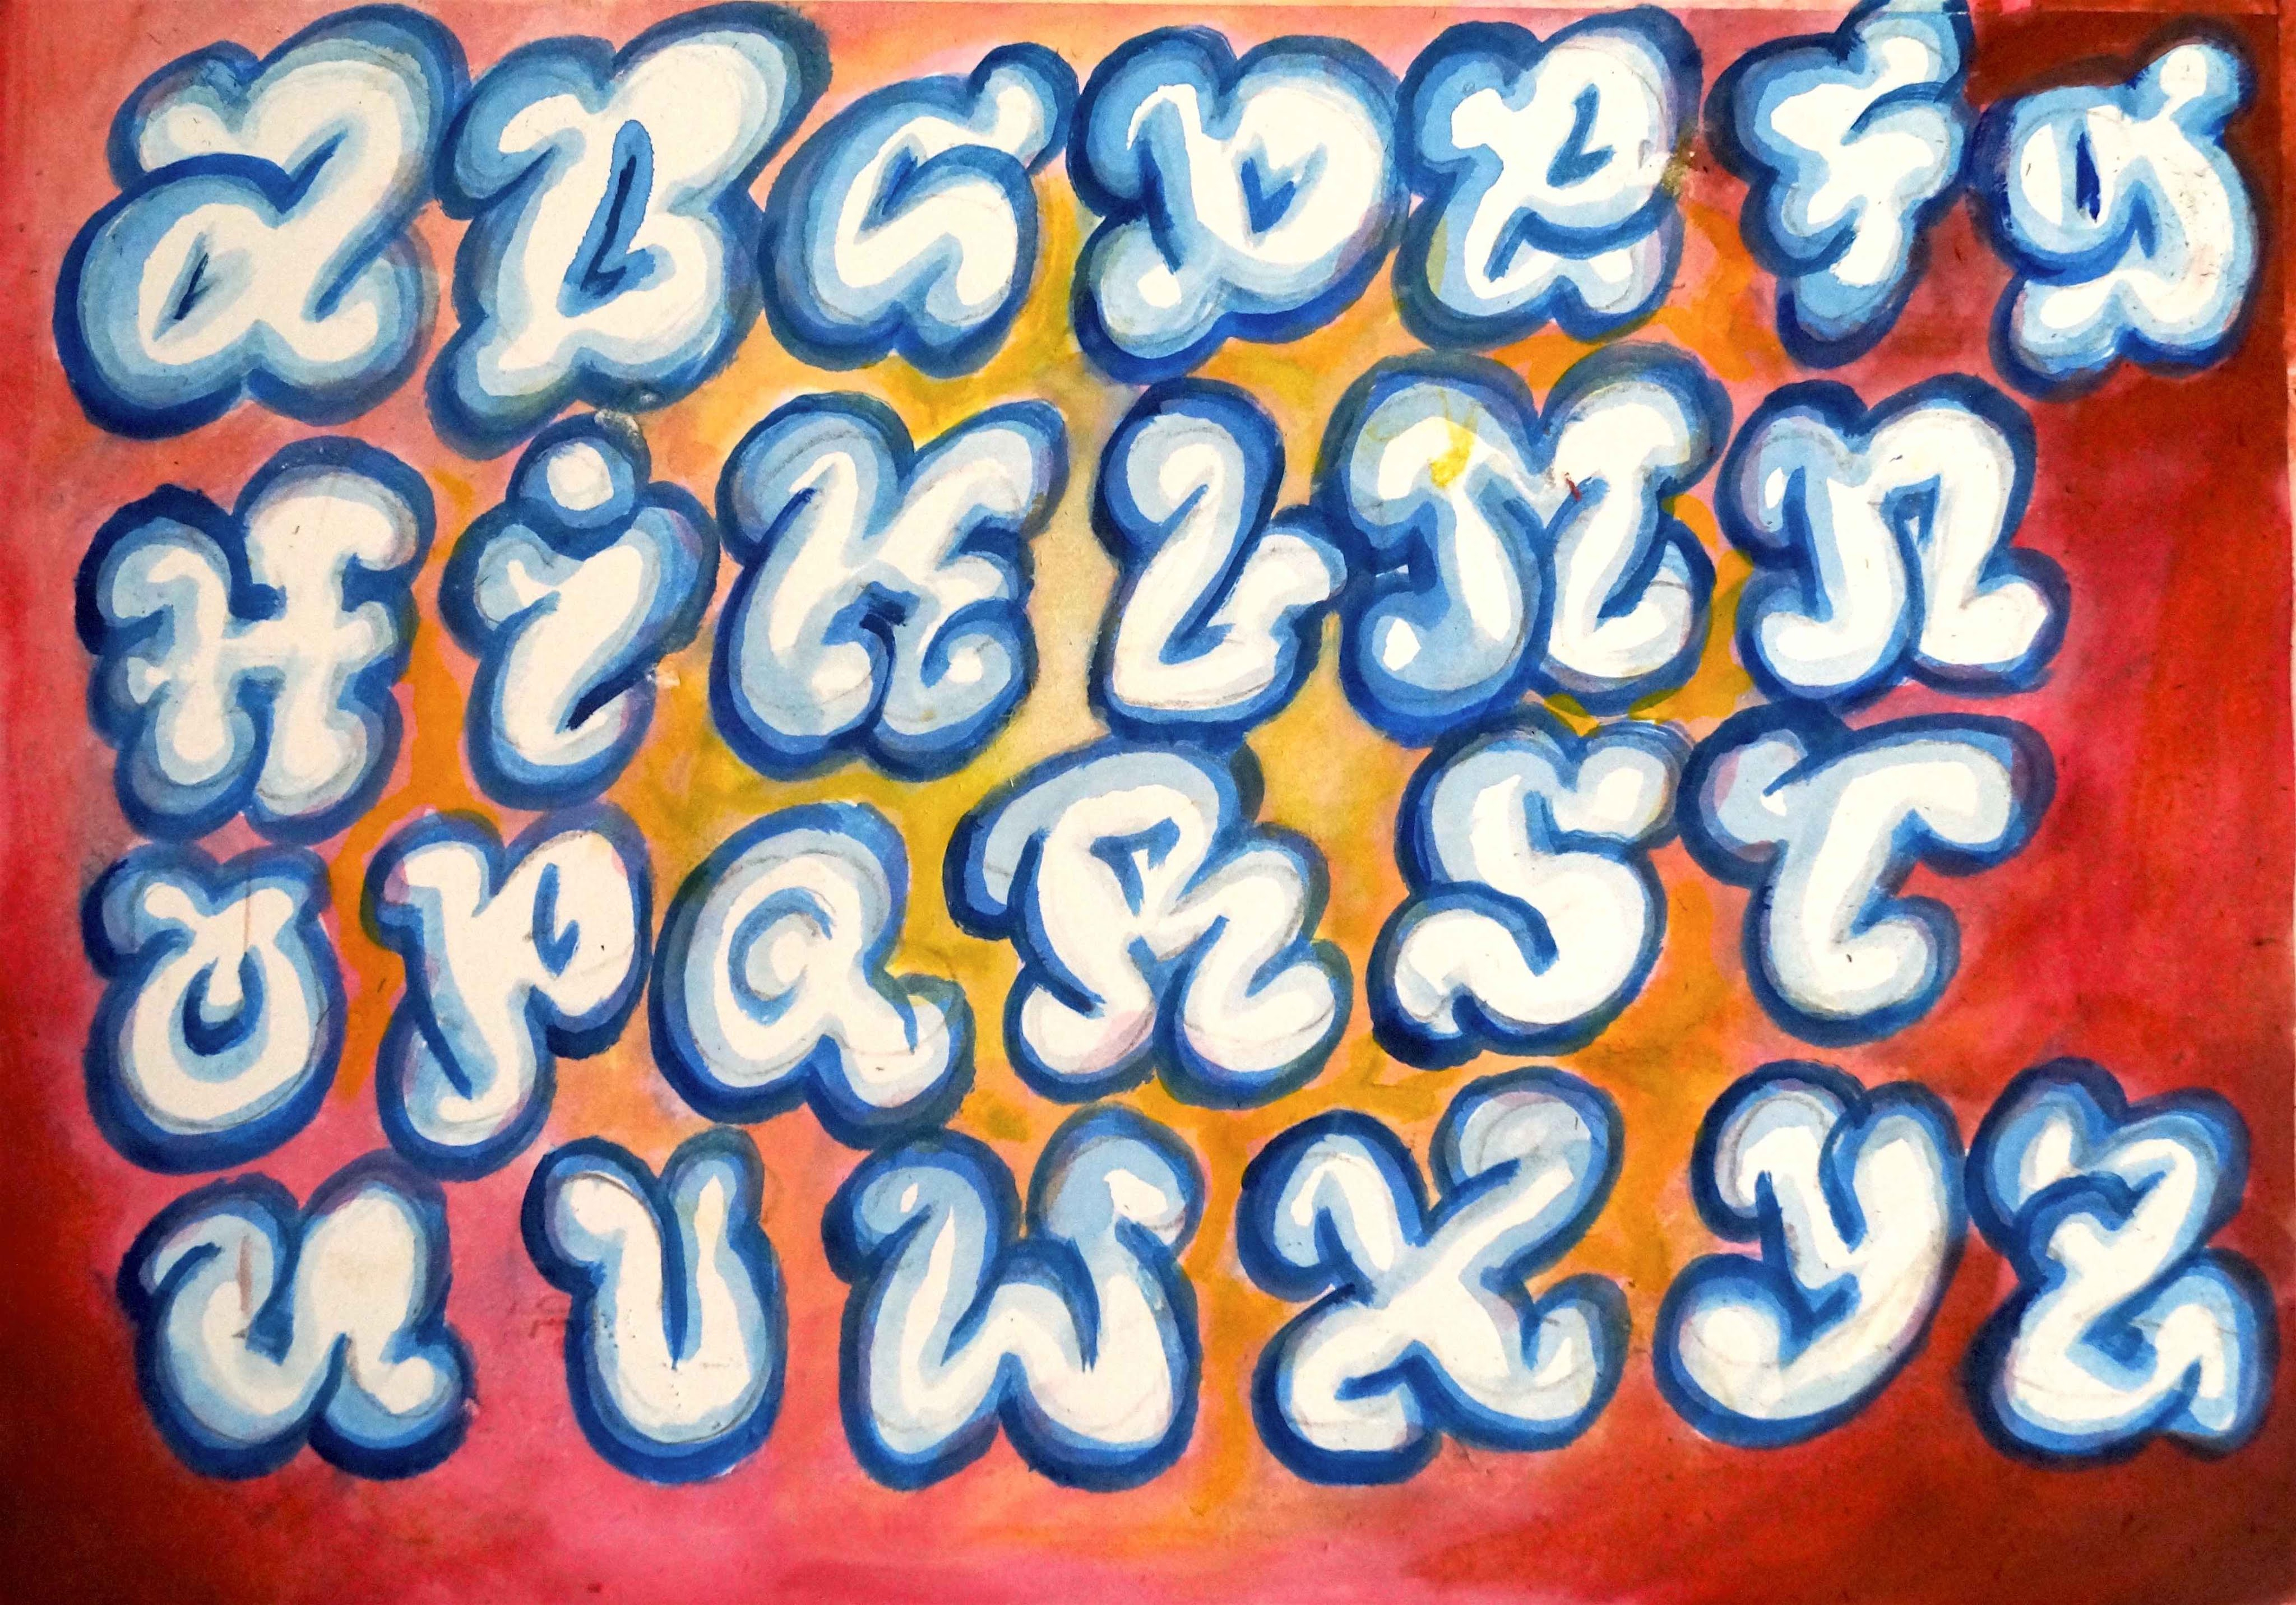 4096x2864 Letters Of The Alphabet In Graffiti How To Paint And Draw A 3d